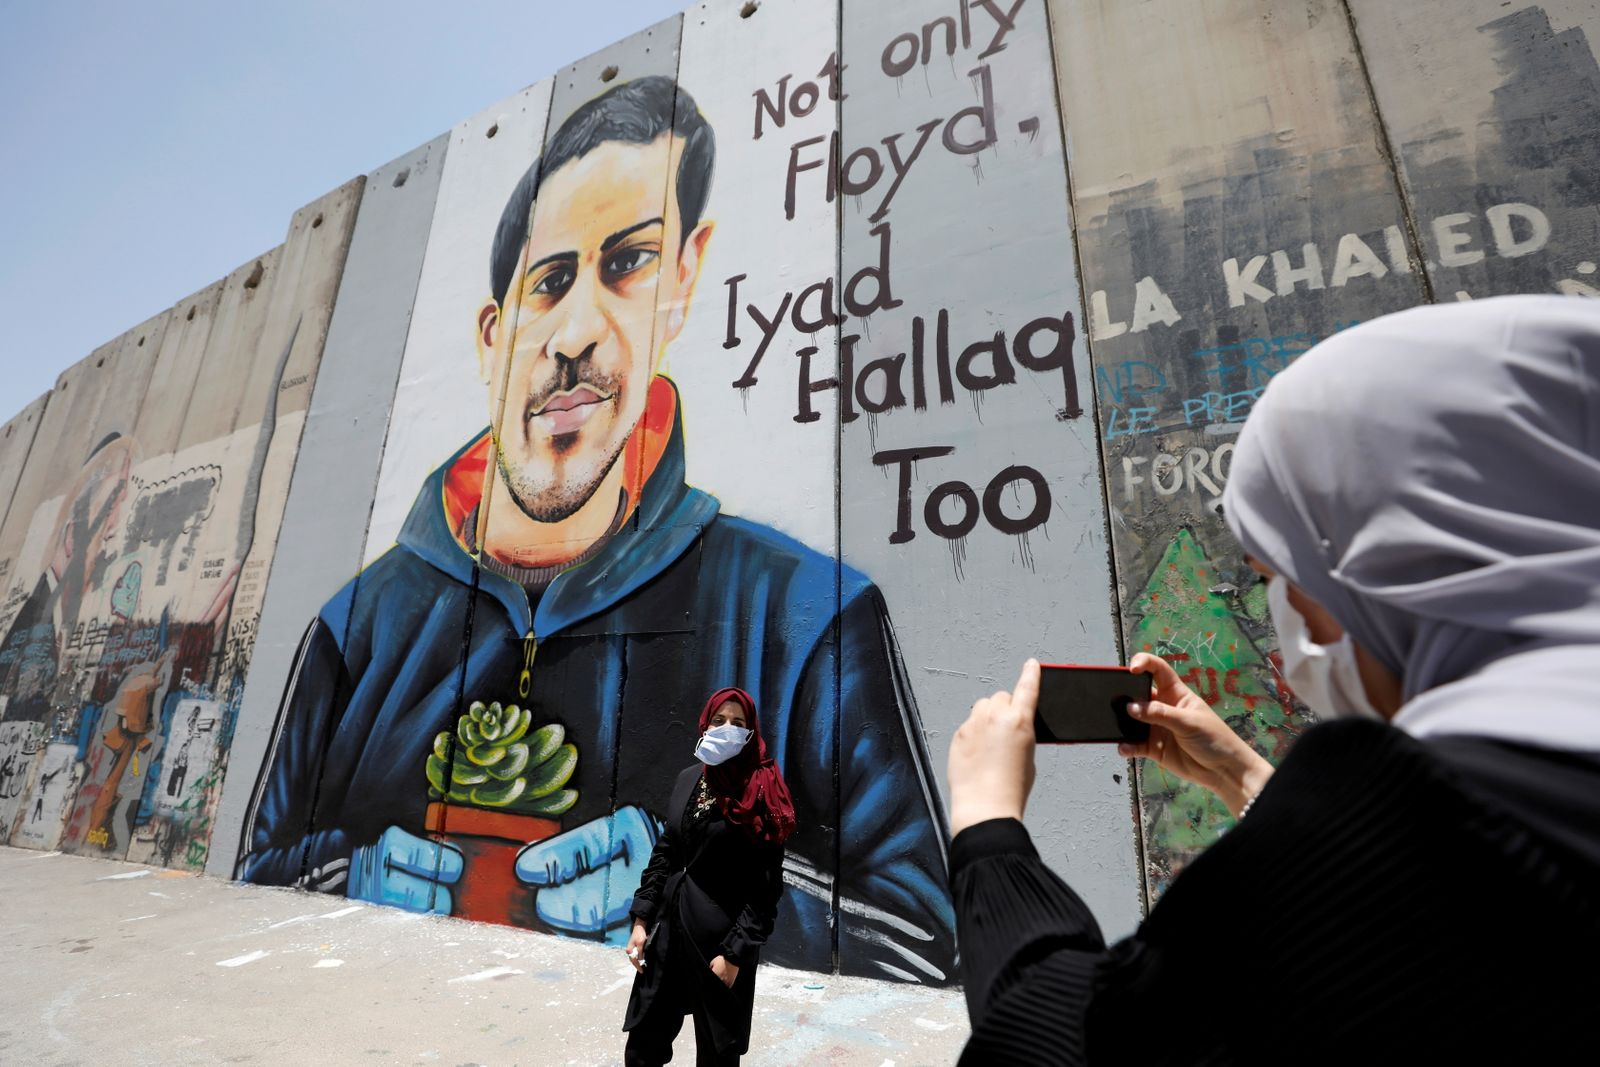 FILE PHOTO: A Palestinian woman takes pictures of her friend posing in front of the Israeli barrier with a mural depicting Iyad al-Halaq, in Bethlehem in the Israeli-occupied West Bank